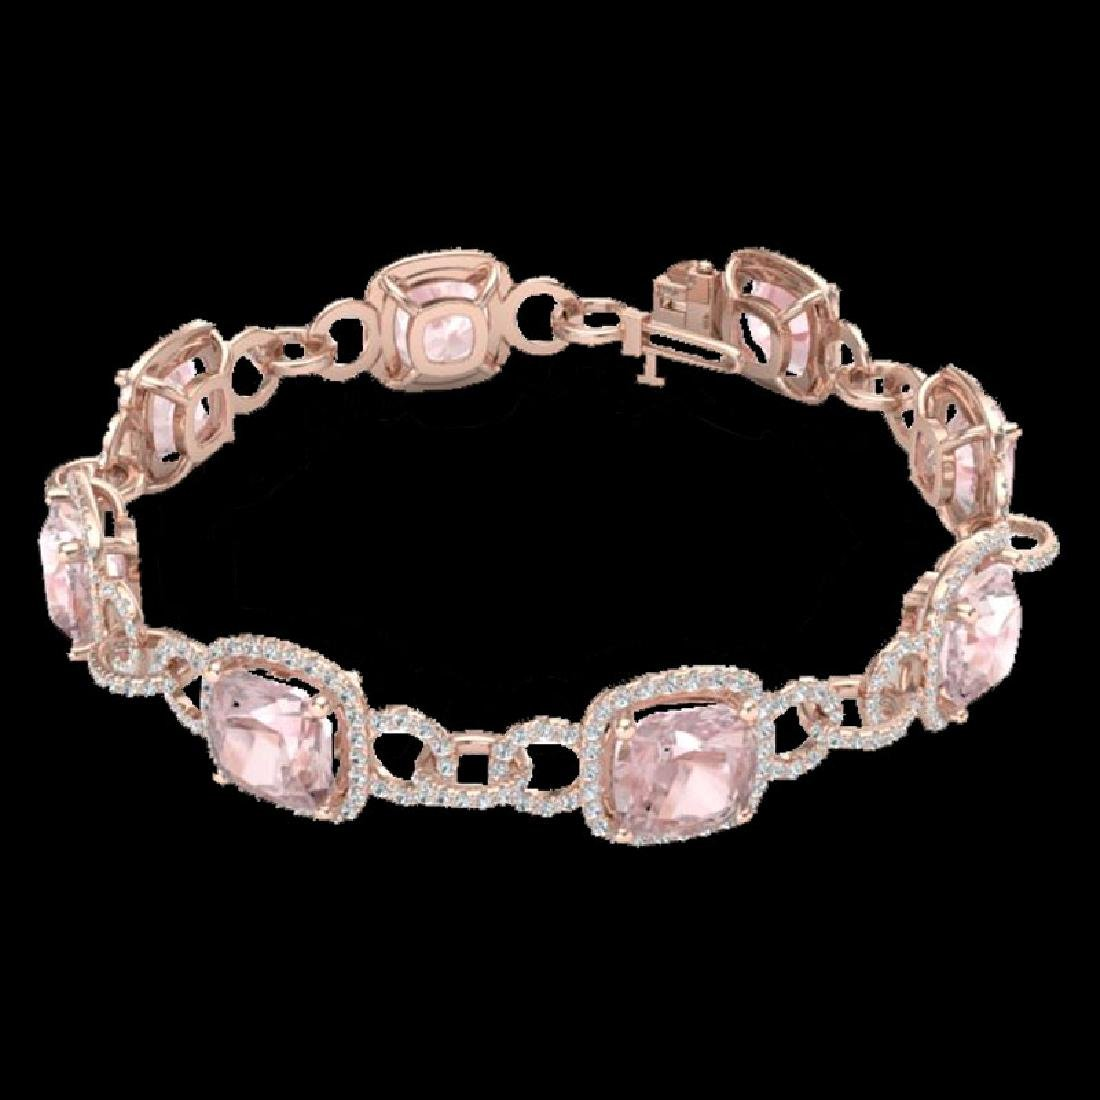 22 CTW Morganite & Micro VS/SI Diamond Bracelet 14K - 2